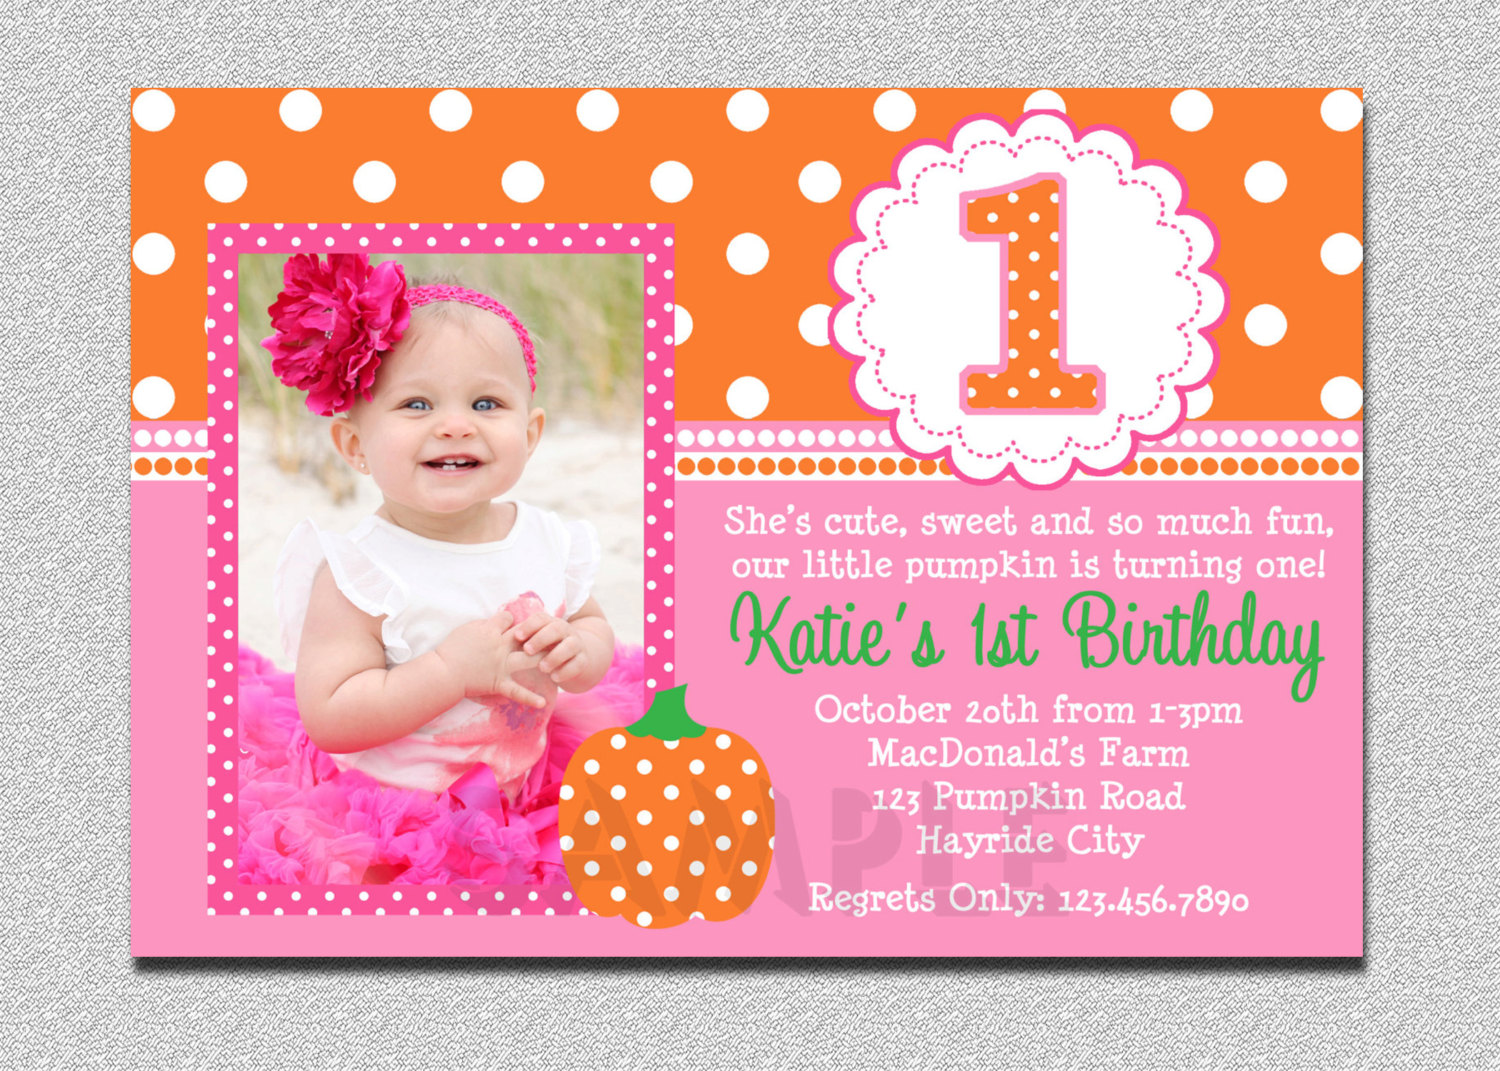 1st birthday photo card invitations ; baby-girl-first-birthday-party-invitations-for-your-save-the-dates-and-invites-13